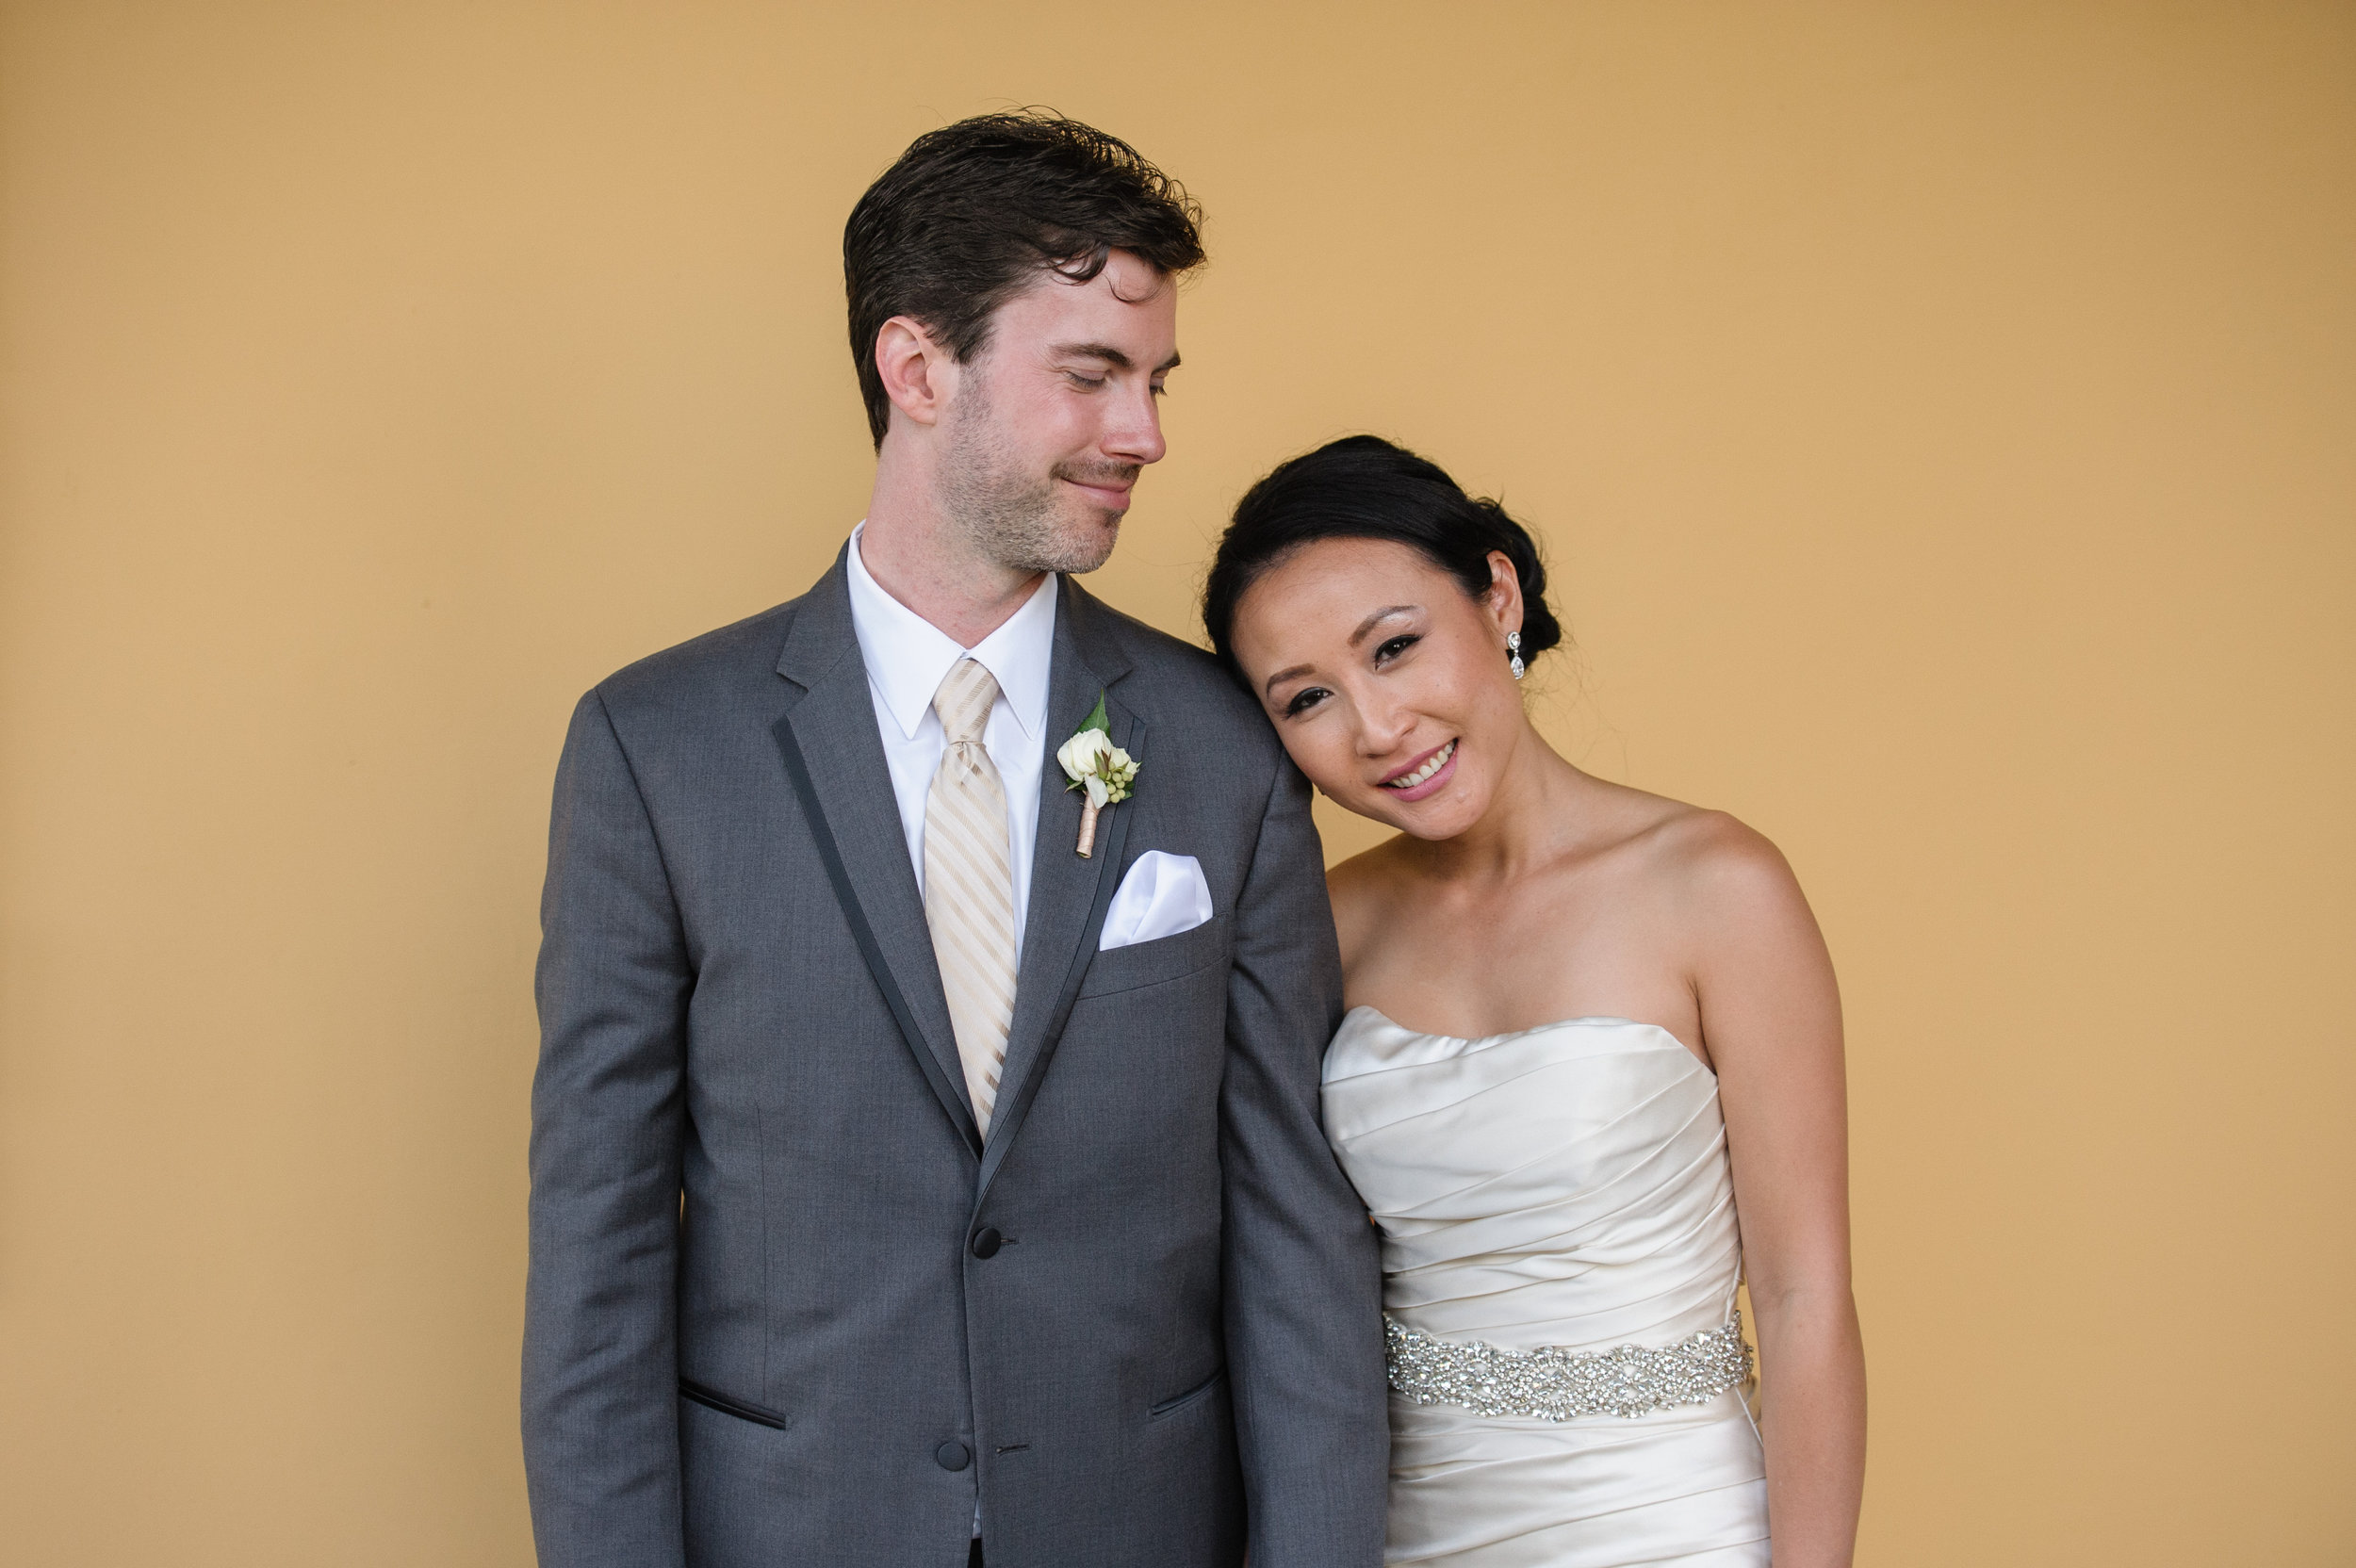 Jim and Janet's Wedding in Sonoma, CA -